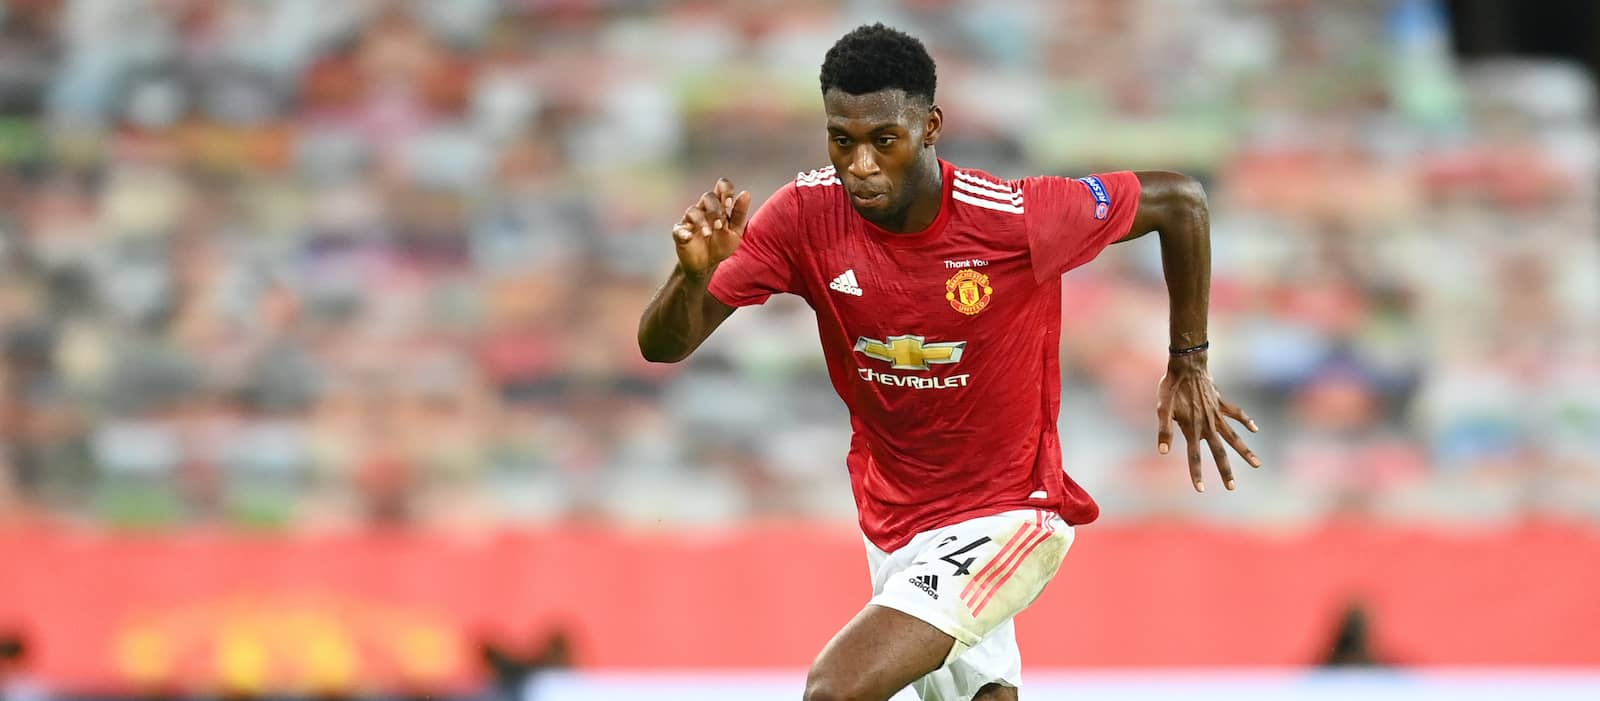 Social media reacts to Timothy Fosu-Mensah's Bayer Leverkusen move